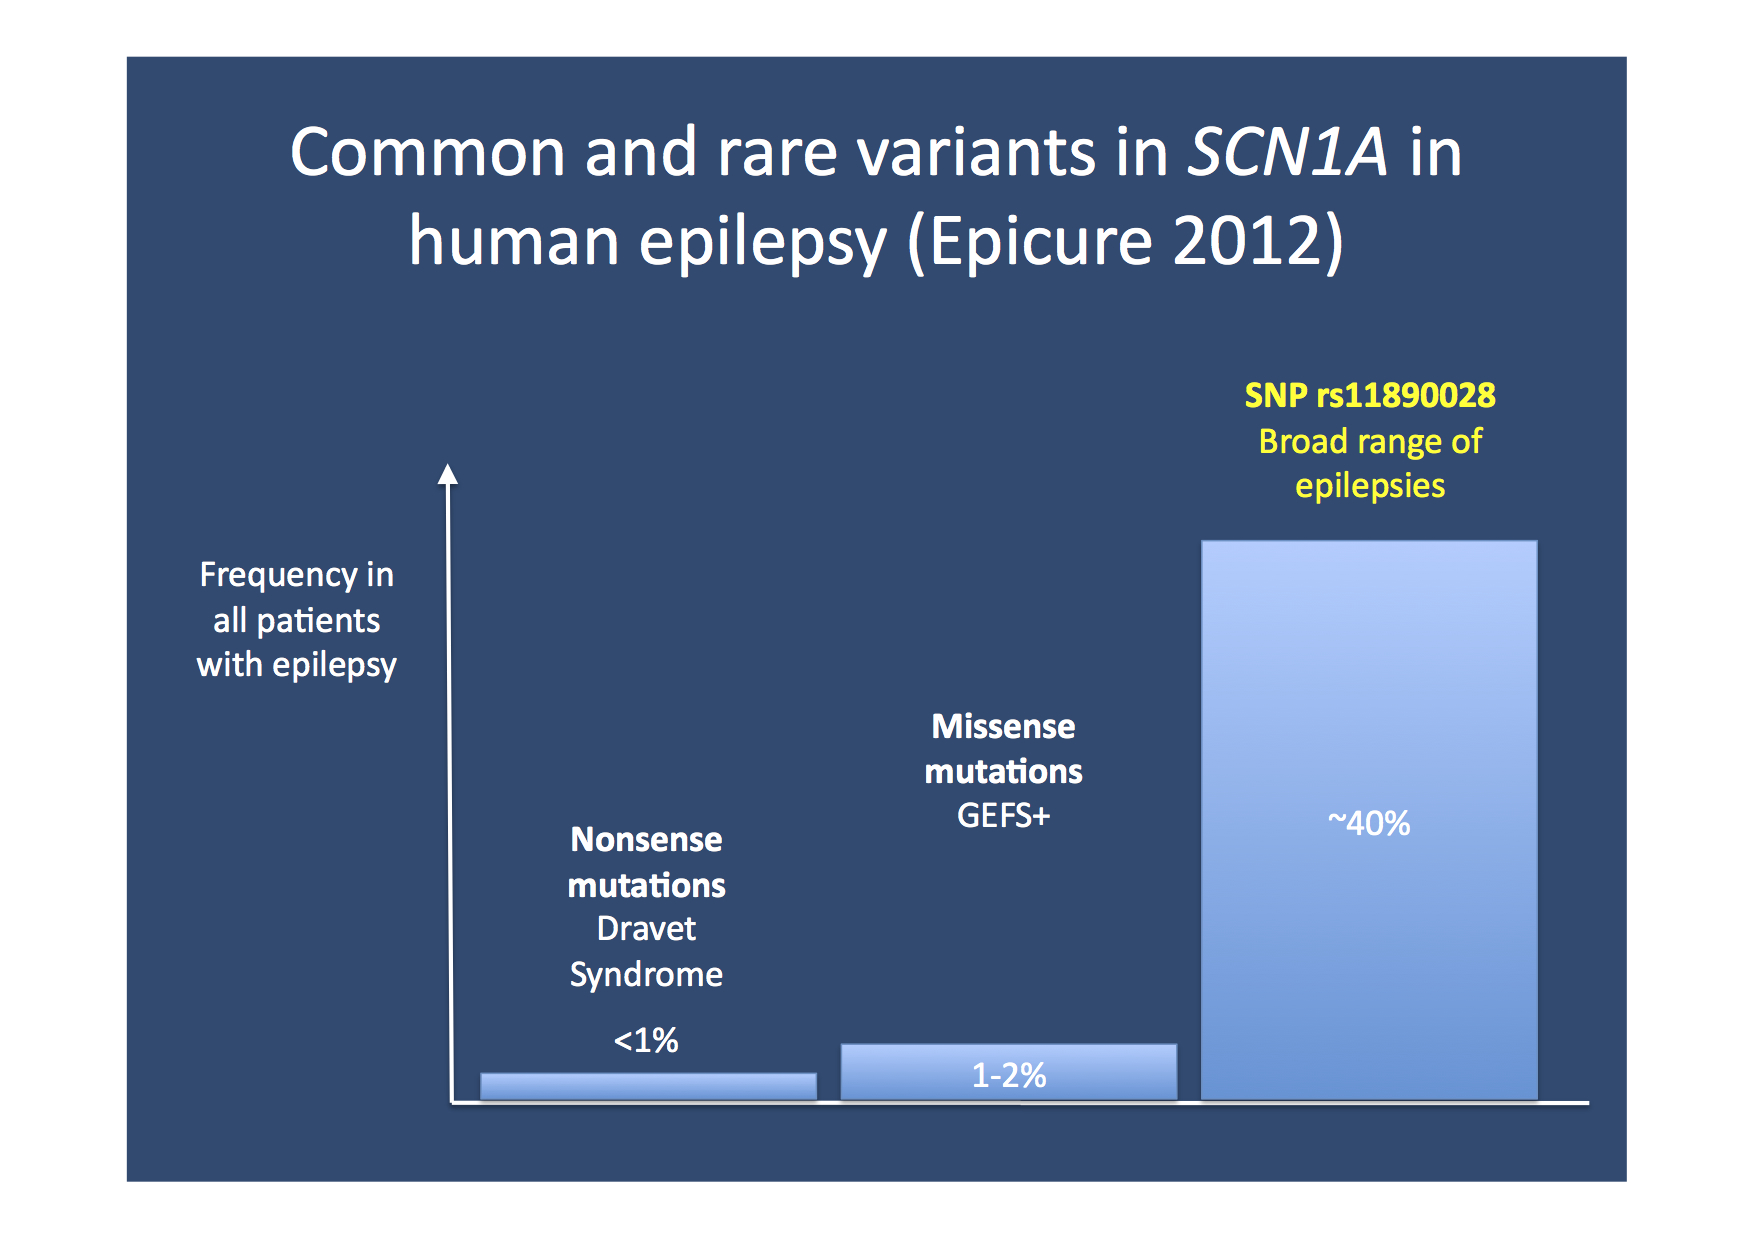 In defence of common variants. The recent EPICURE GWAS identified an intergenic variant in proximity of SCN1A as a common risk factor for a wide range of epilepsies. Even though rare, highly penetrant variants in SCN1A causing Dravet Syndrome receive most of the attention, common variants have a strong impact on the population level. Despite the fact that common variants are also present in a large proportion of unaffected individuals, the population-attributable risk of common risk factors is probably higher than the cumulative impact of mutations causing Dravet Syndrome or GEFS+.